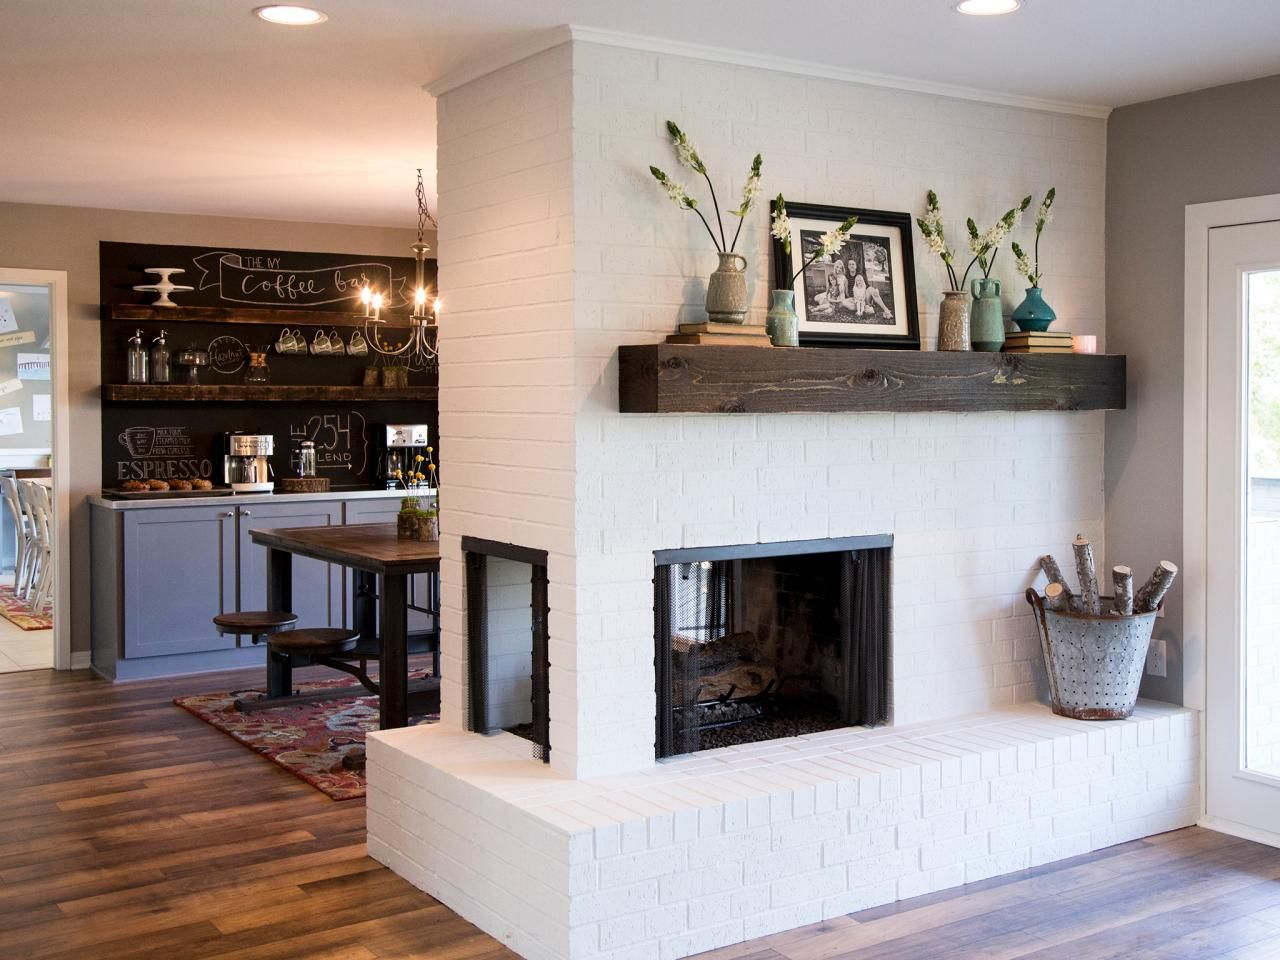 9 design tricks we learned from joanna gaines joanna gaines hgtv and fresh herbs - Incredible central fireplace ideas ...